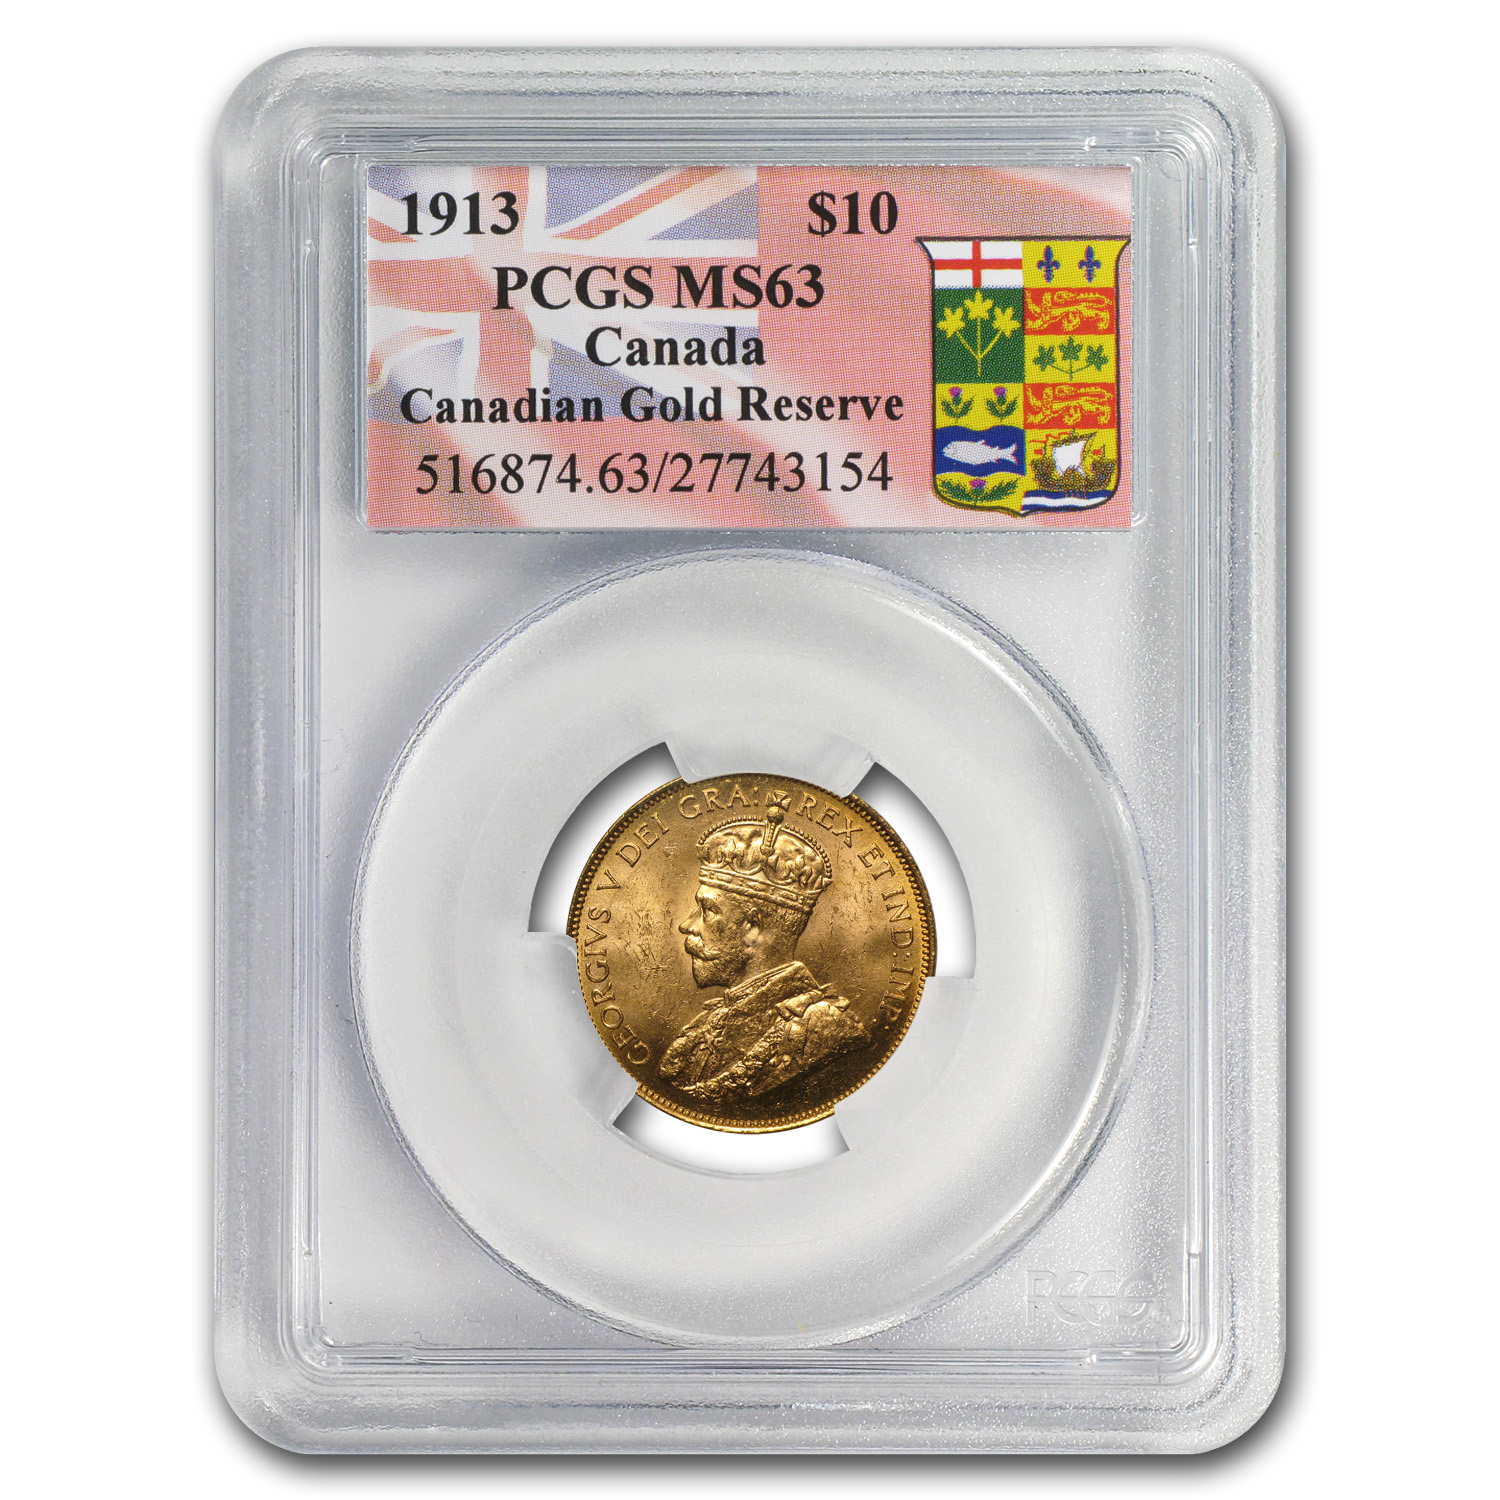 Canada 1913 $10 Gold Reserve George V - MS-63 PCGS